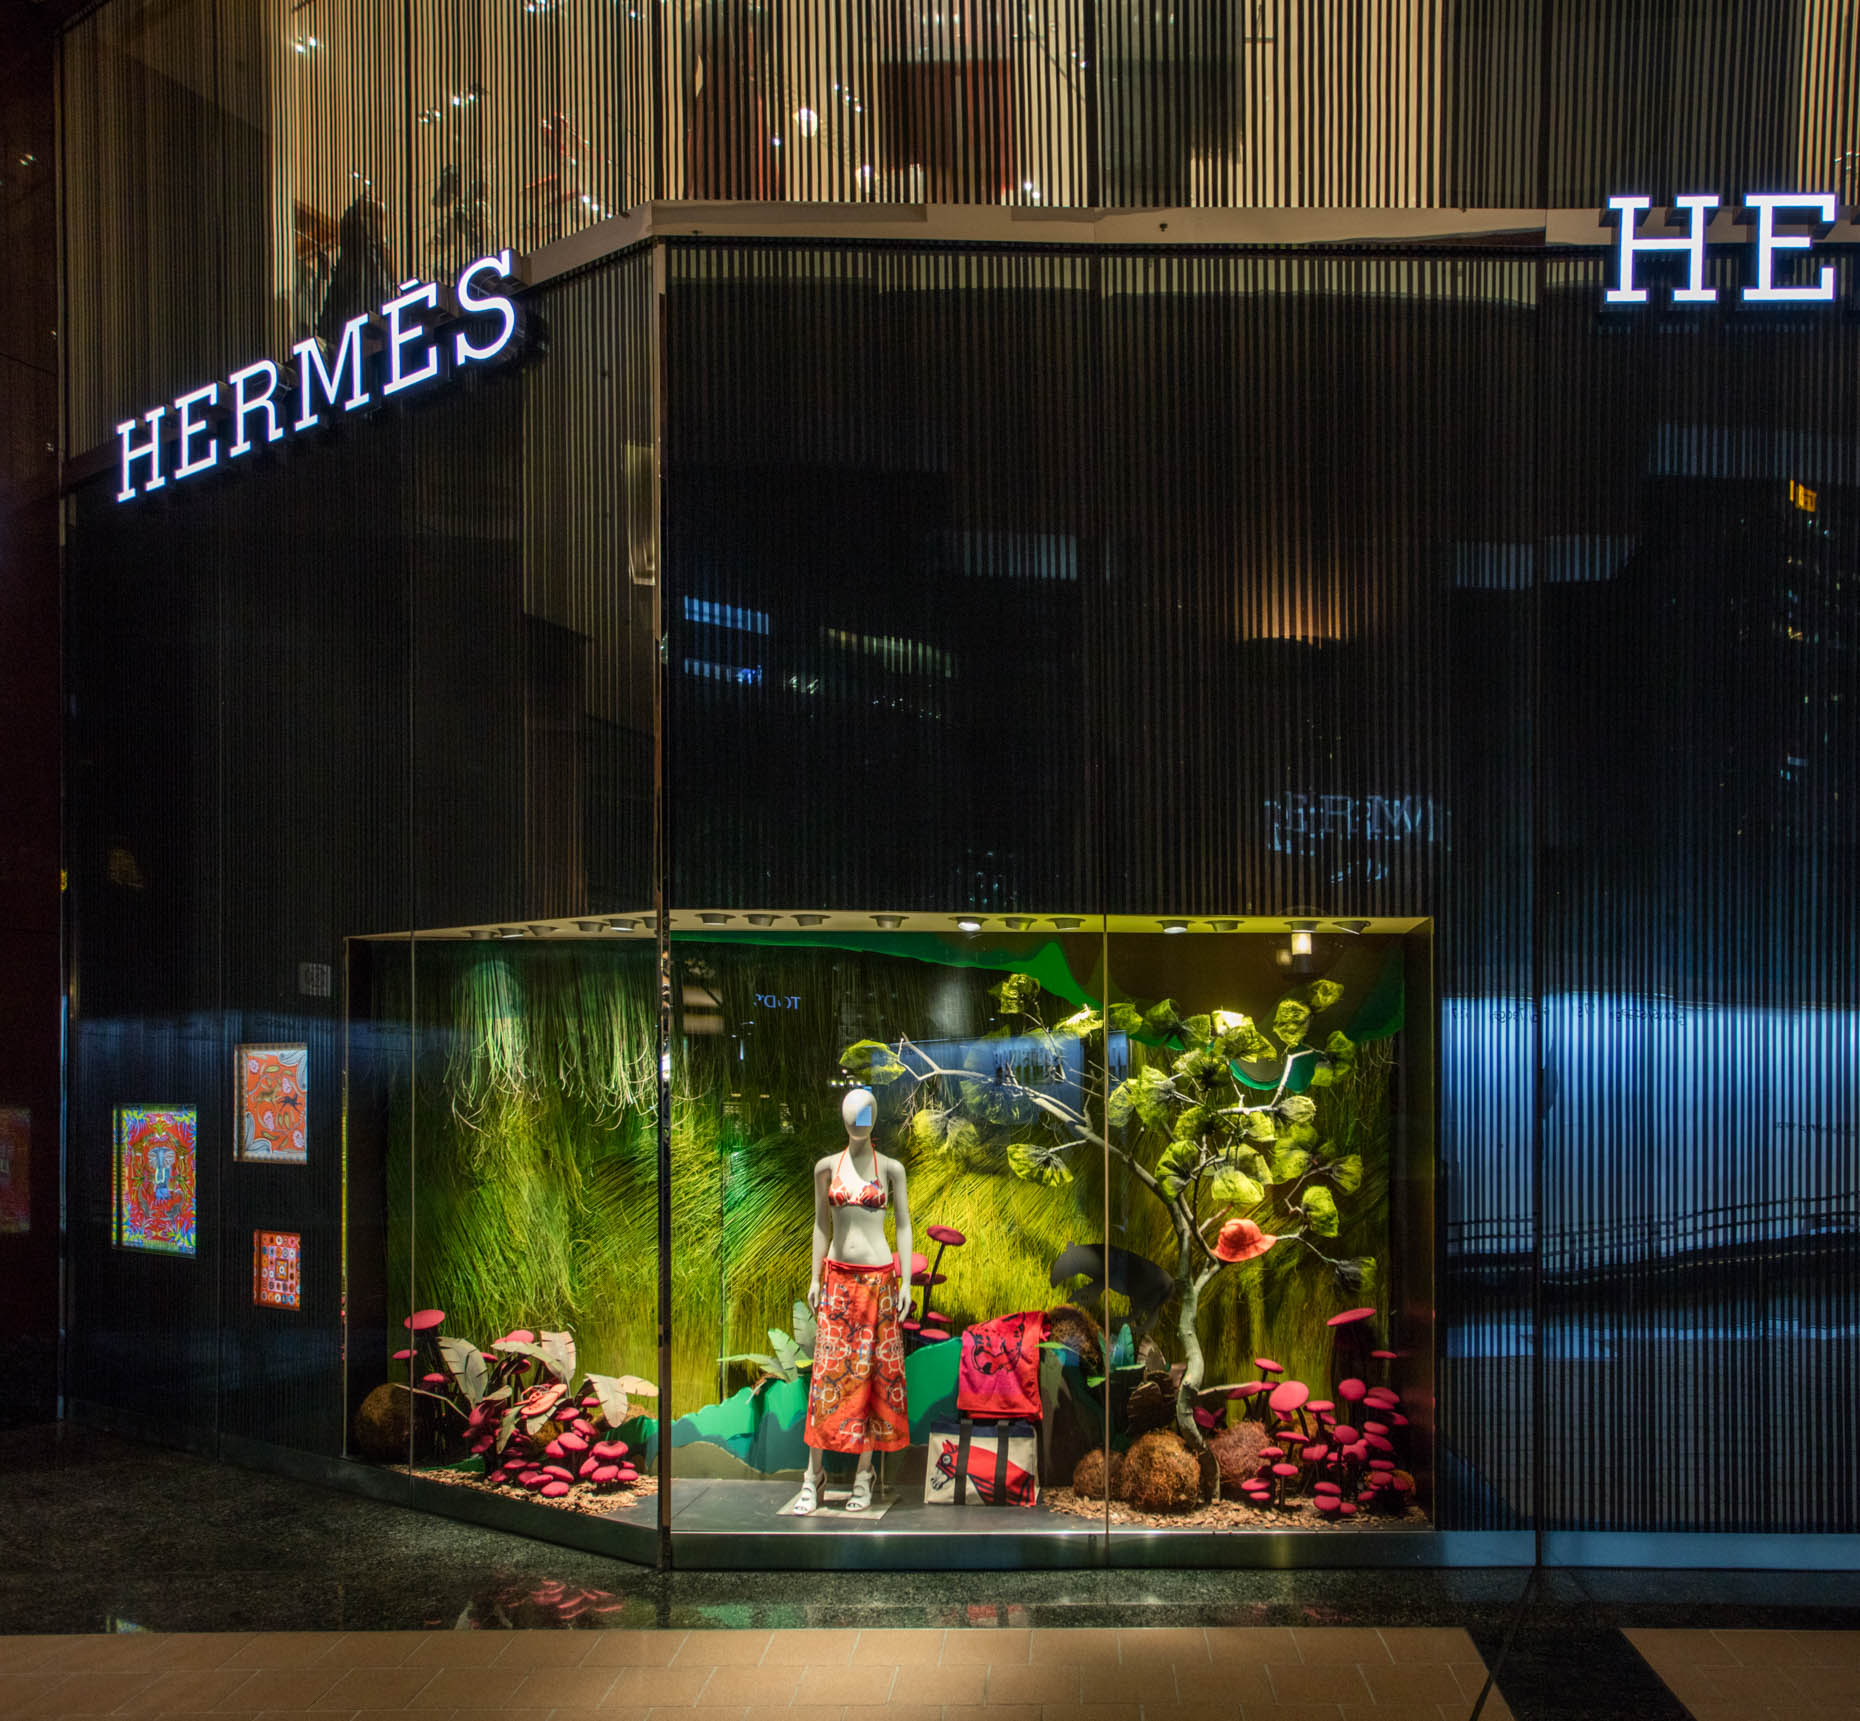 Hermes-store-display-_-Hong-Huazheng2